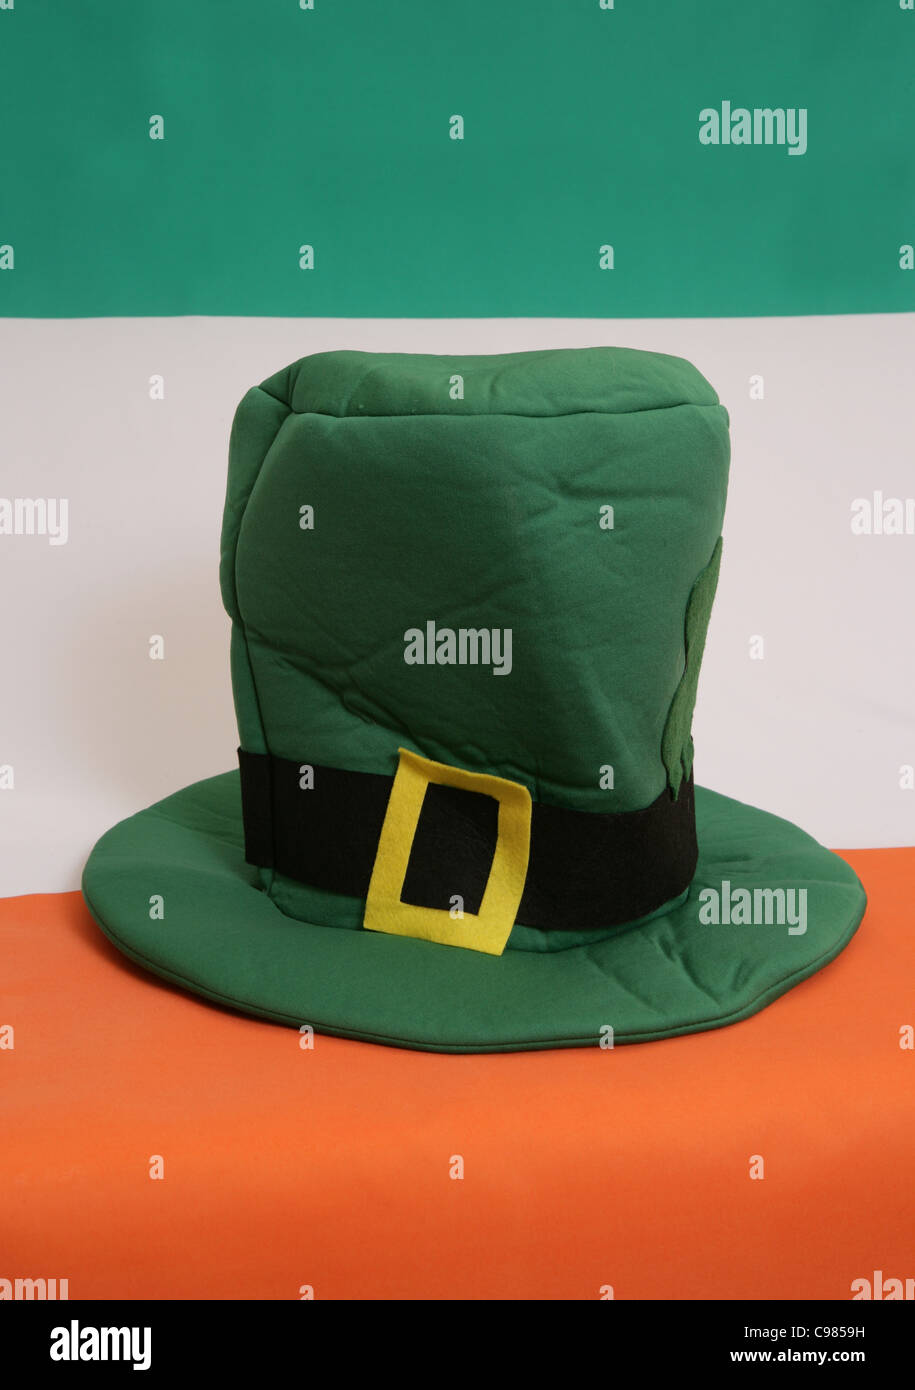 e6ff75674d4aa St patricks day hat on and irish flag Stock Photo  40132445 - Alamy